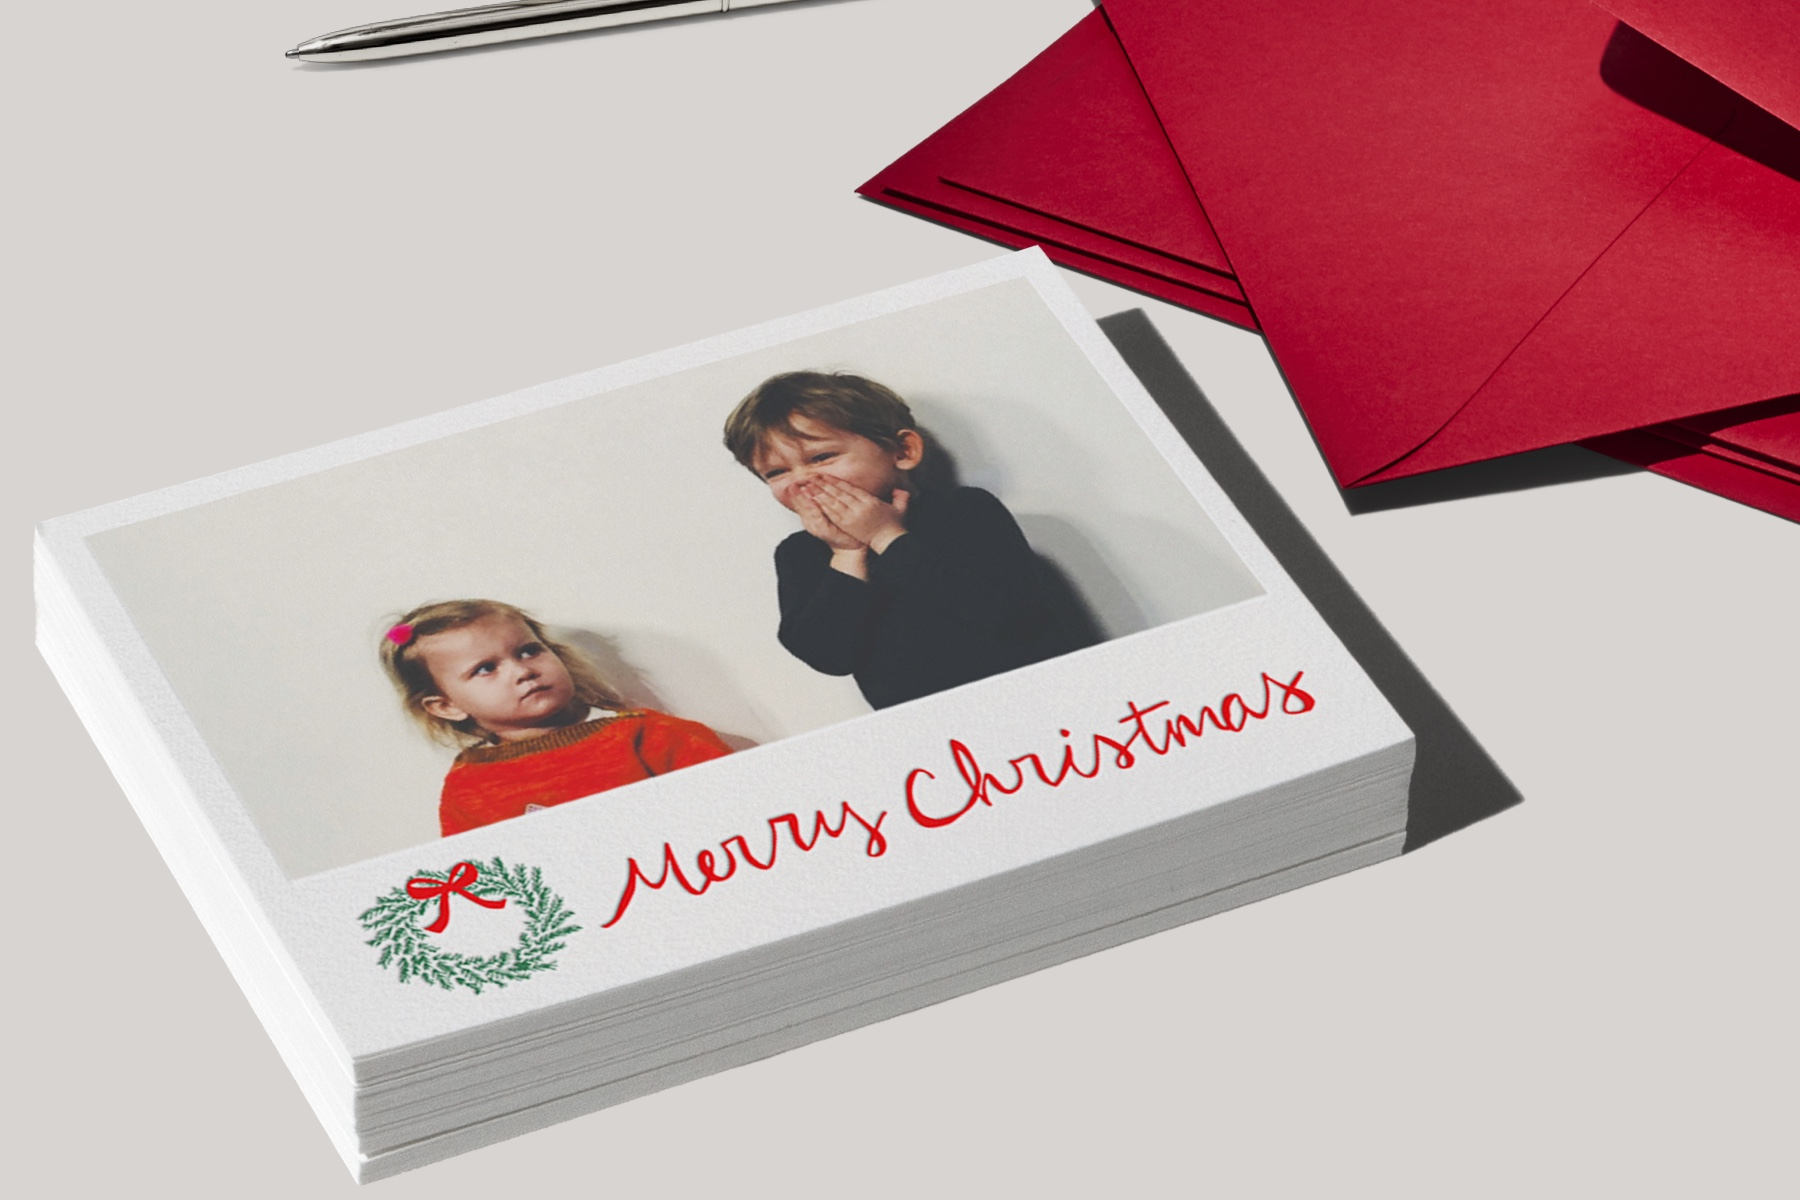 printed holiday card ideas from Paperless Post